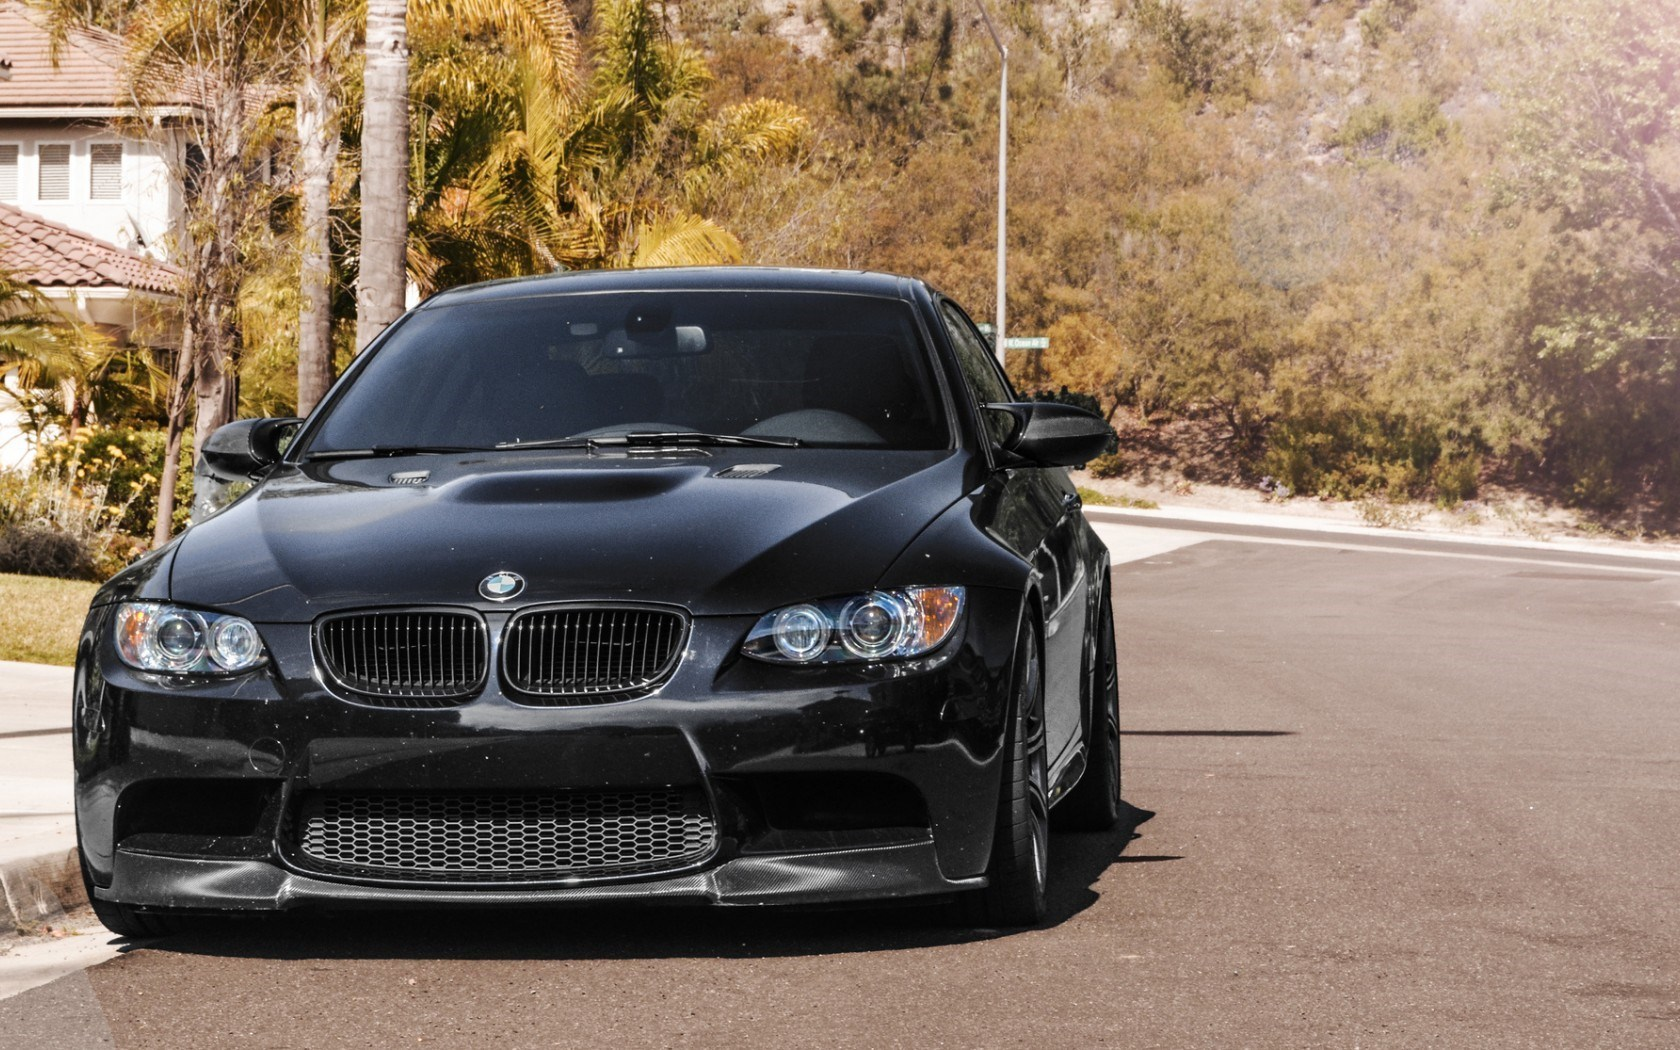 bmw m3 e92 tuning car hd wallpaper free high definition wallpapers. Black Bedroom Furniture Sets. Home Design Ideas